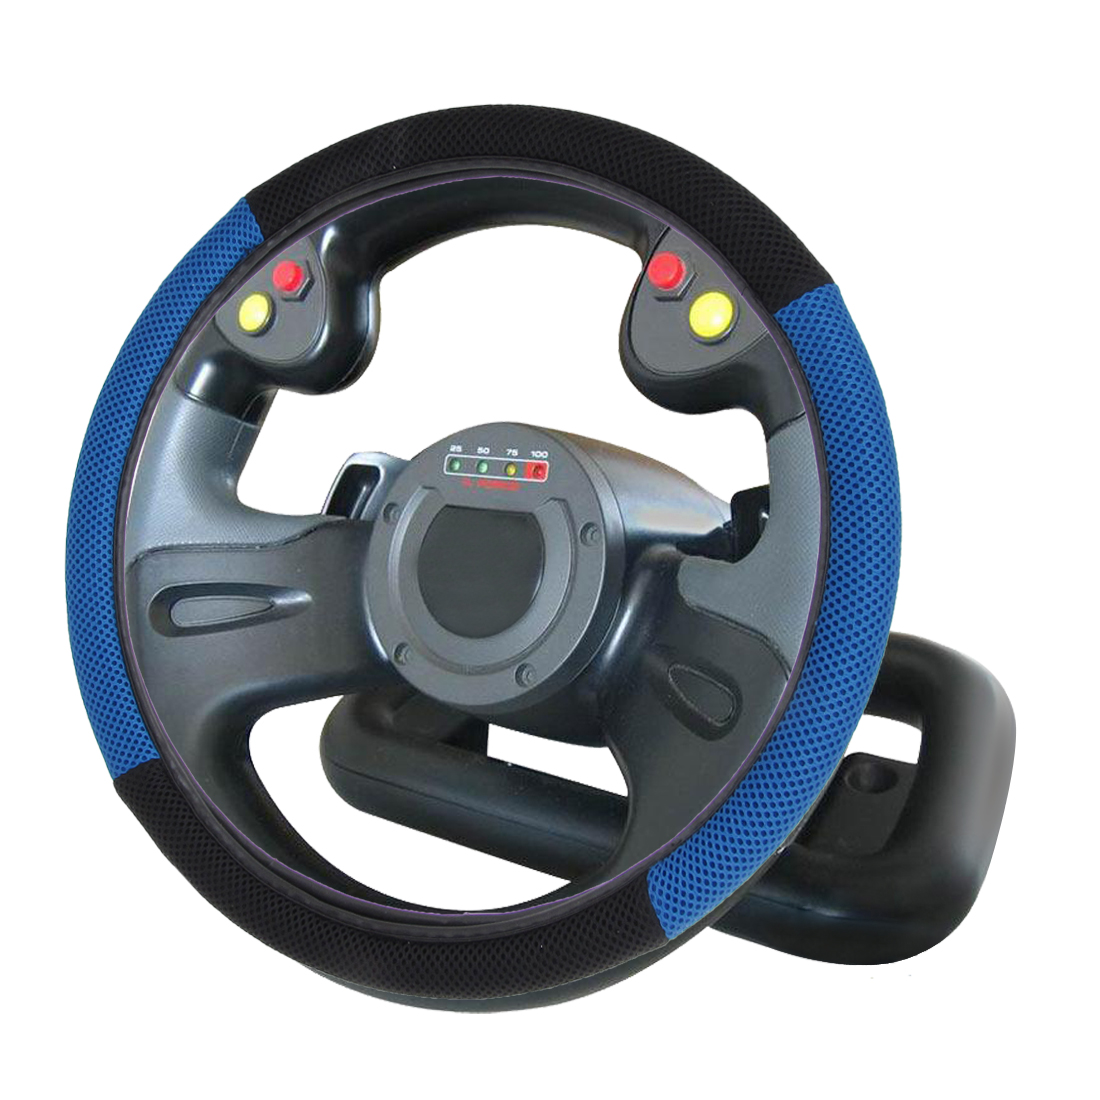 Black Blue Mesh Rubber Elastomer Steering Wheel Cover for Car Truck